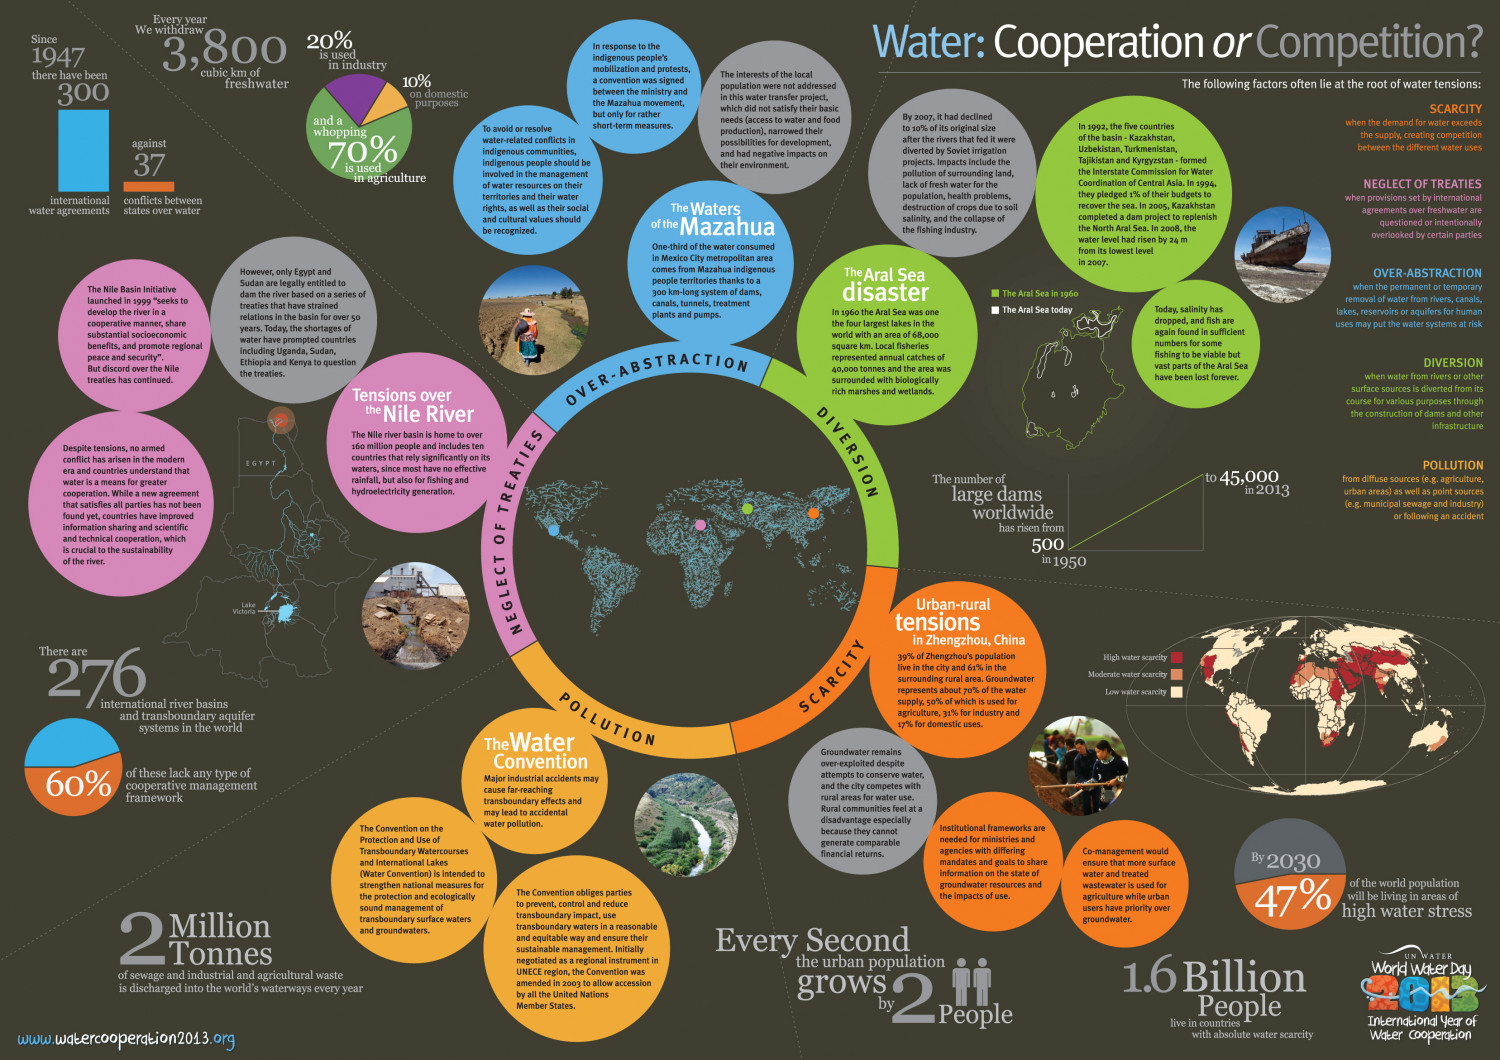 Water: Cooperation or Competition Infographic